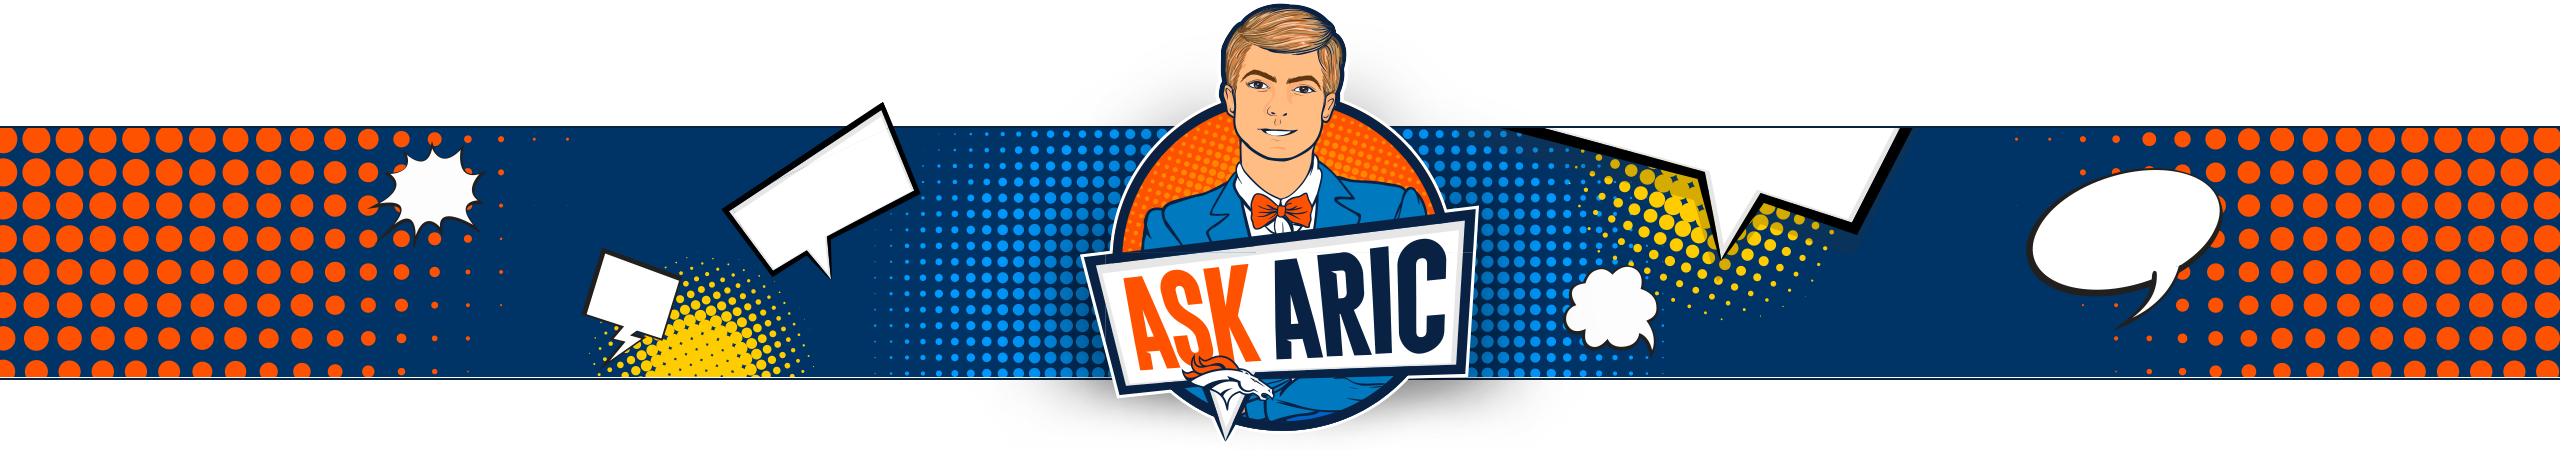 ask_aric_hero_2560x450